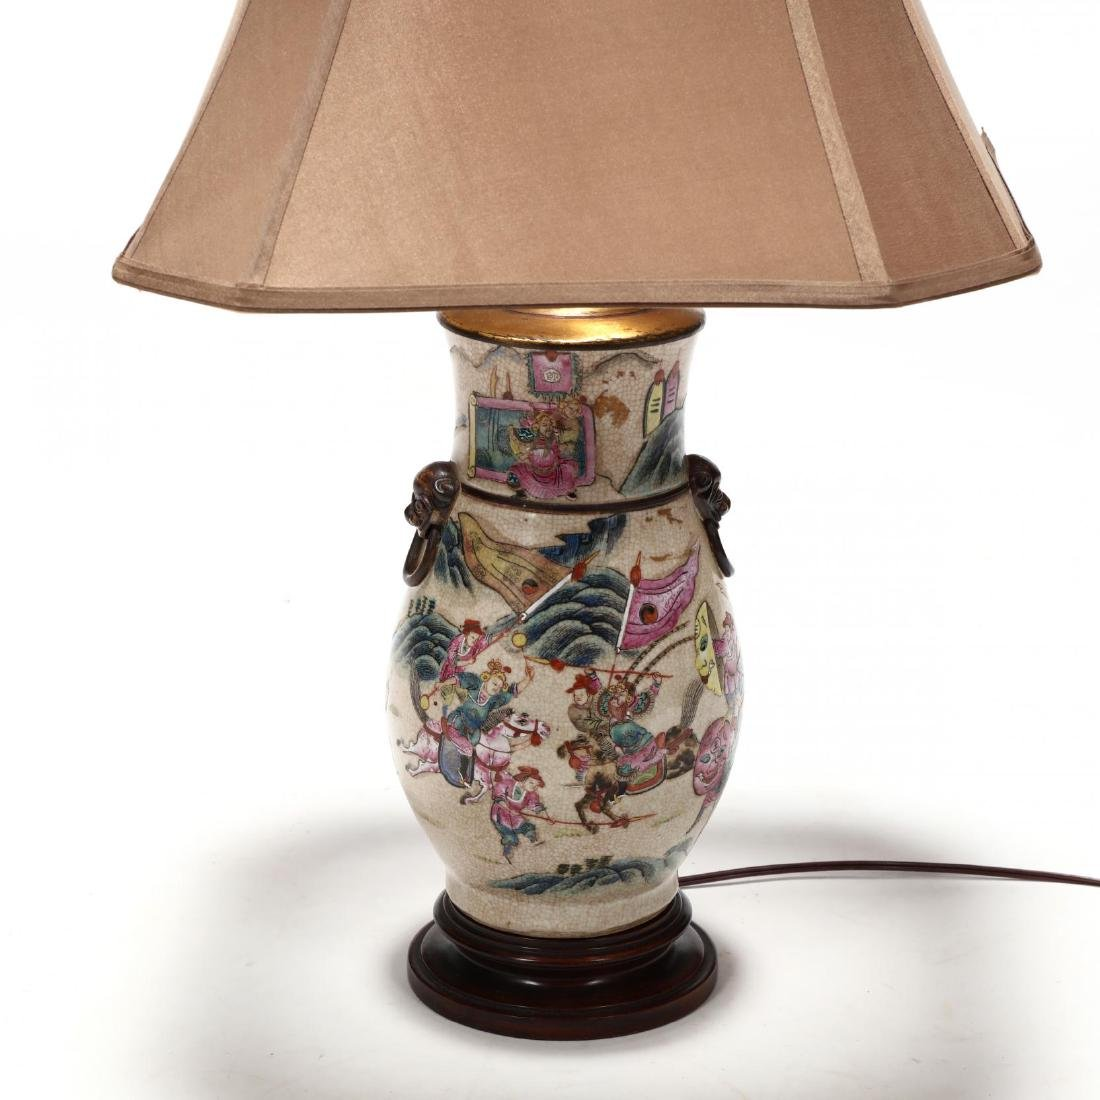 Chinese Export Porcelain Table Lamp - 2